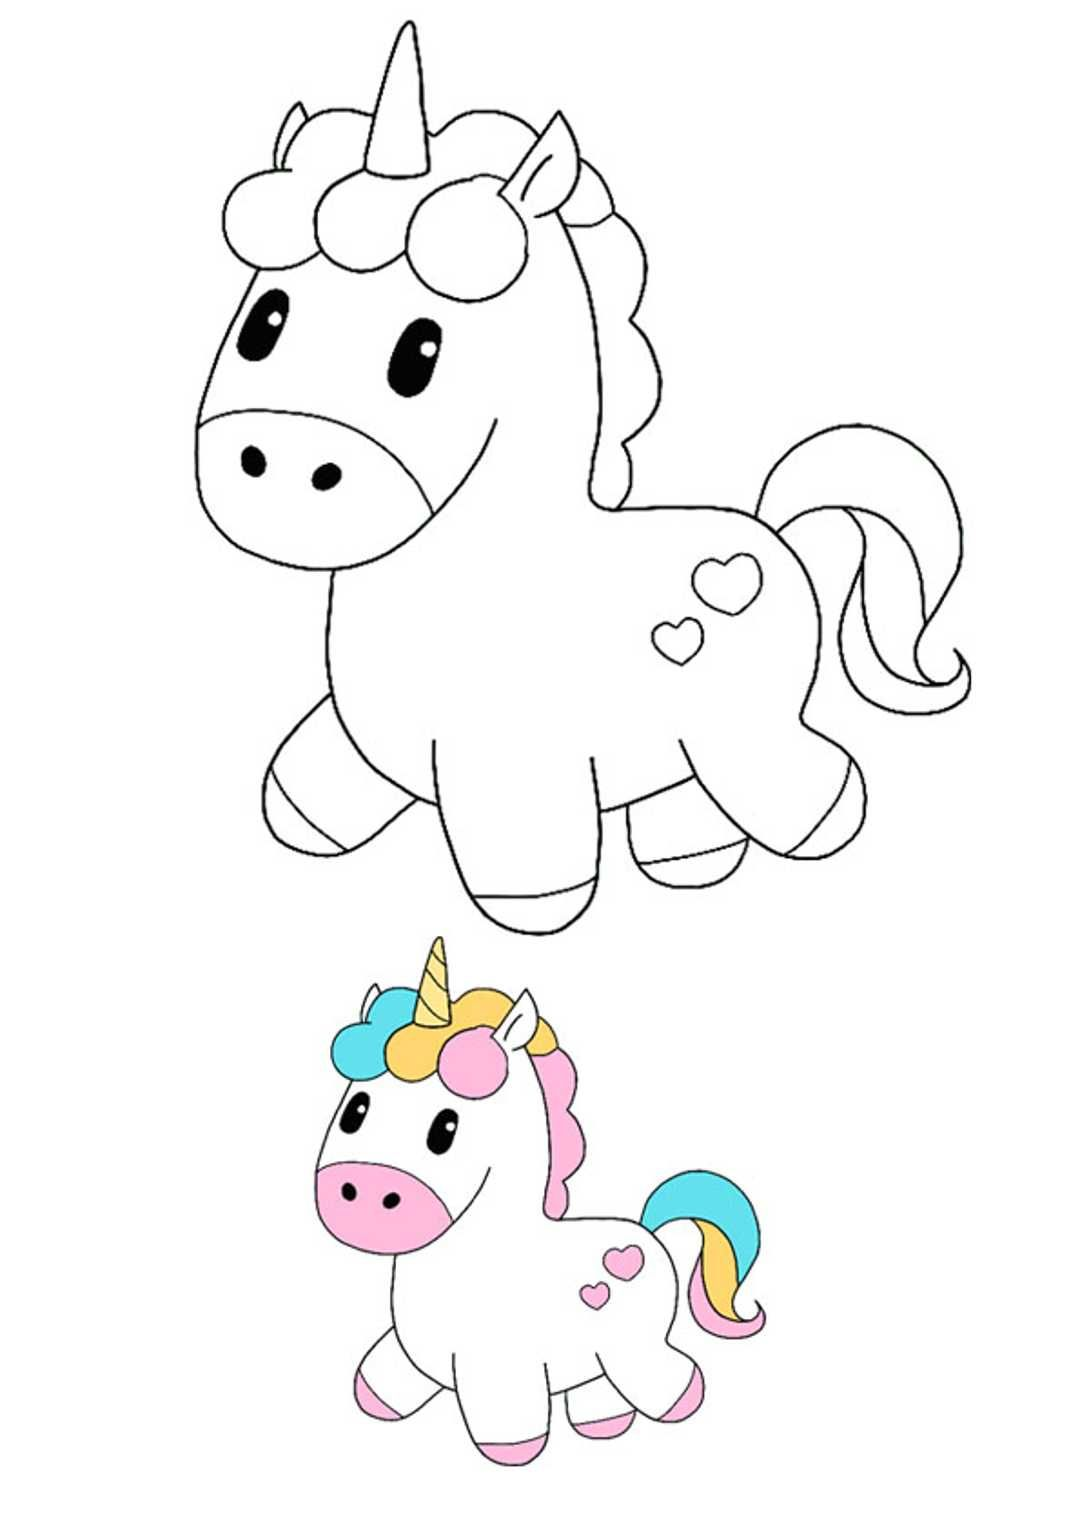 Cute Unicorn Coloring Pages Mermaid Coloring Pages Fairy Coloring Pages Unicorn Coloring Pages